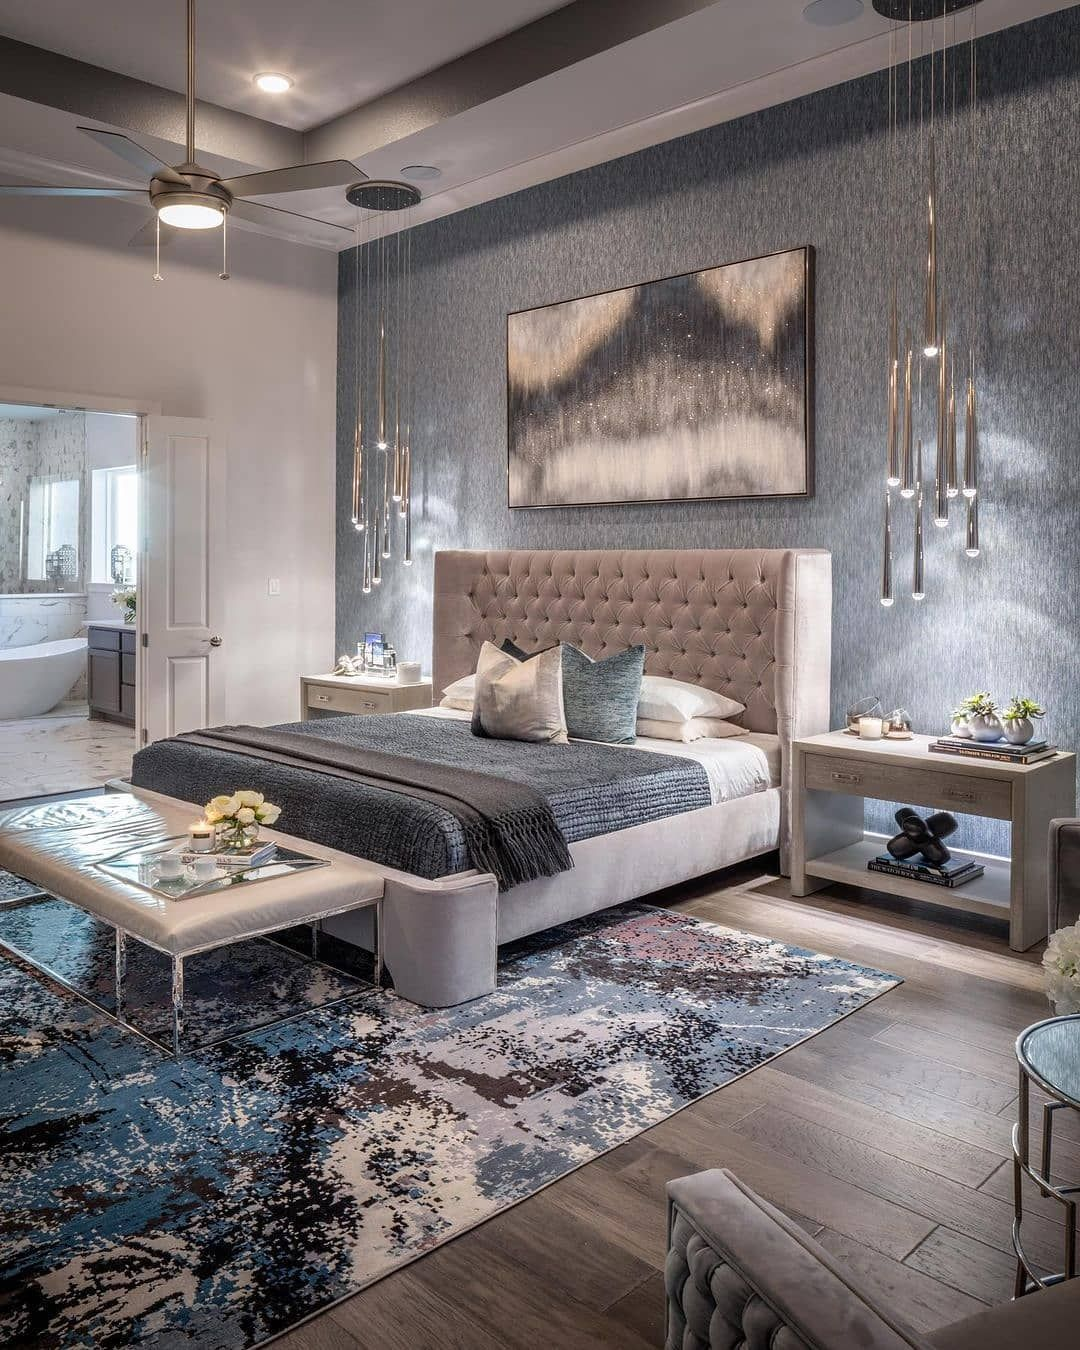 Ideas I Decor L Inspiration On Instagram Good Morning My Friends What Is The Most Beautiful Thing In 2021 Luxurious Bedrooms Bedroom Bed Design Luxury Bedroom Decor Most beautiful bedrooms images